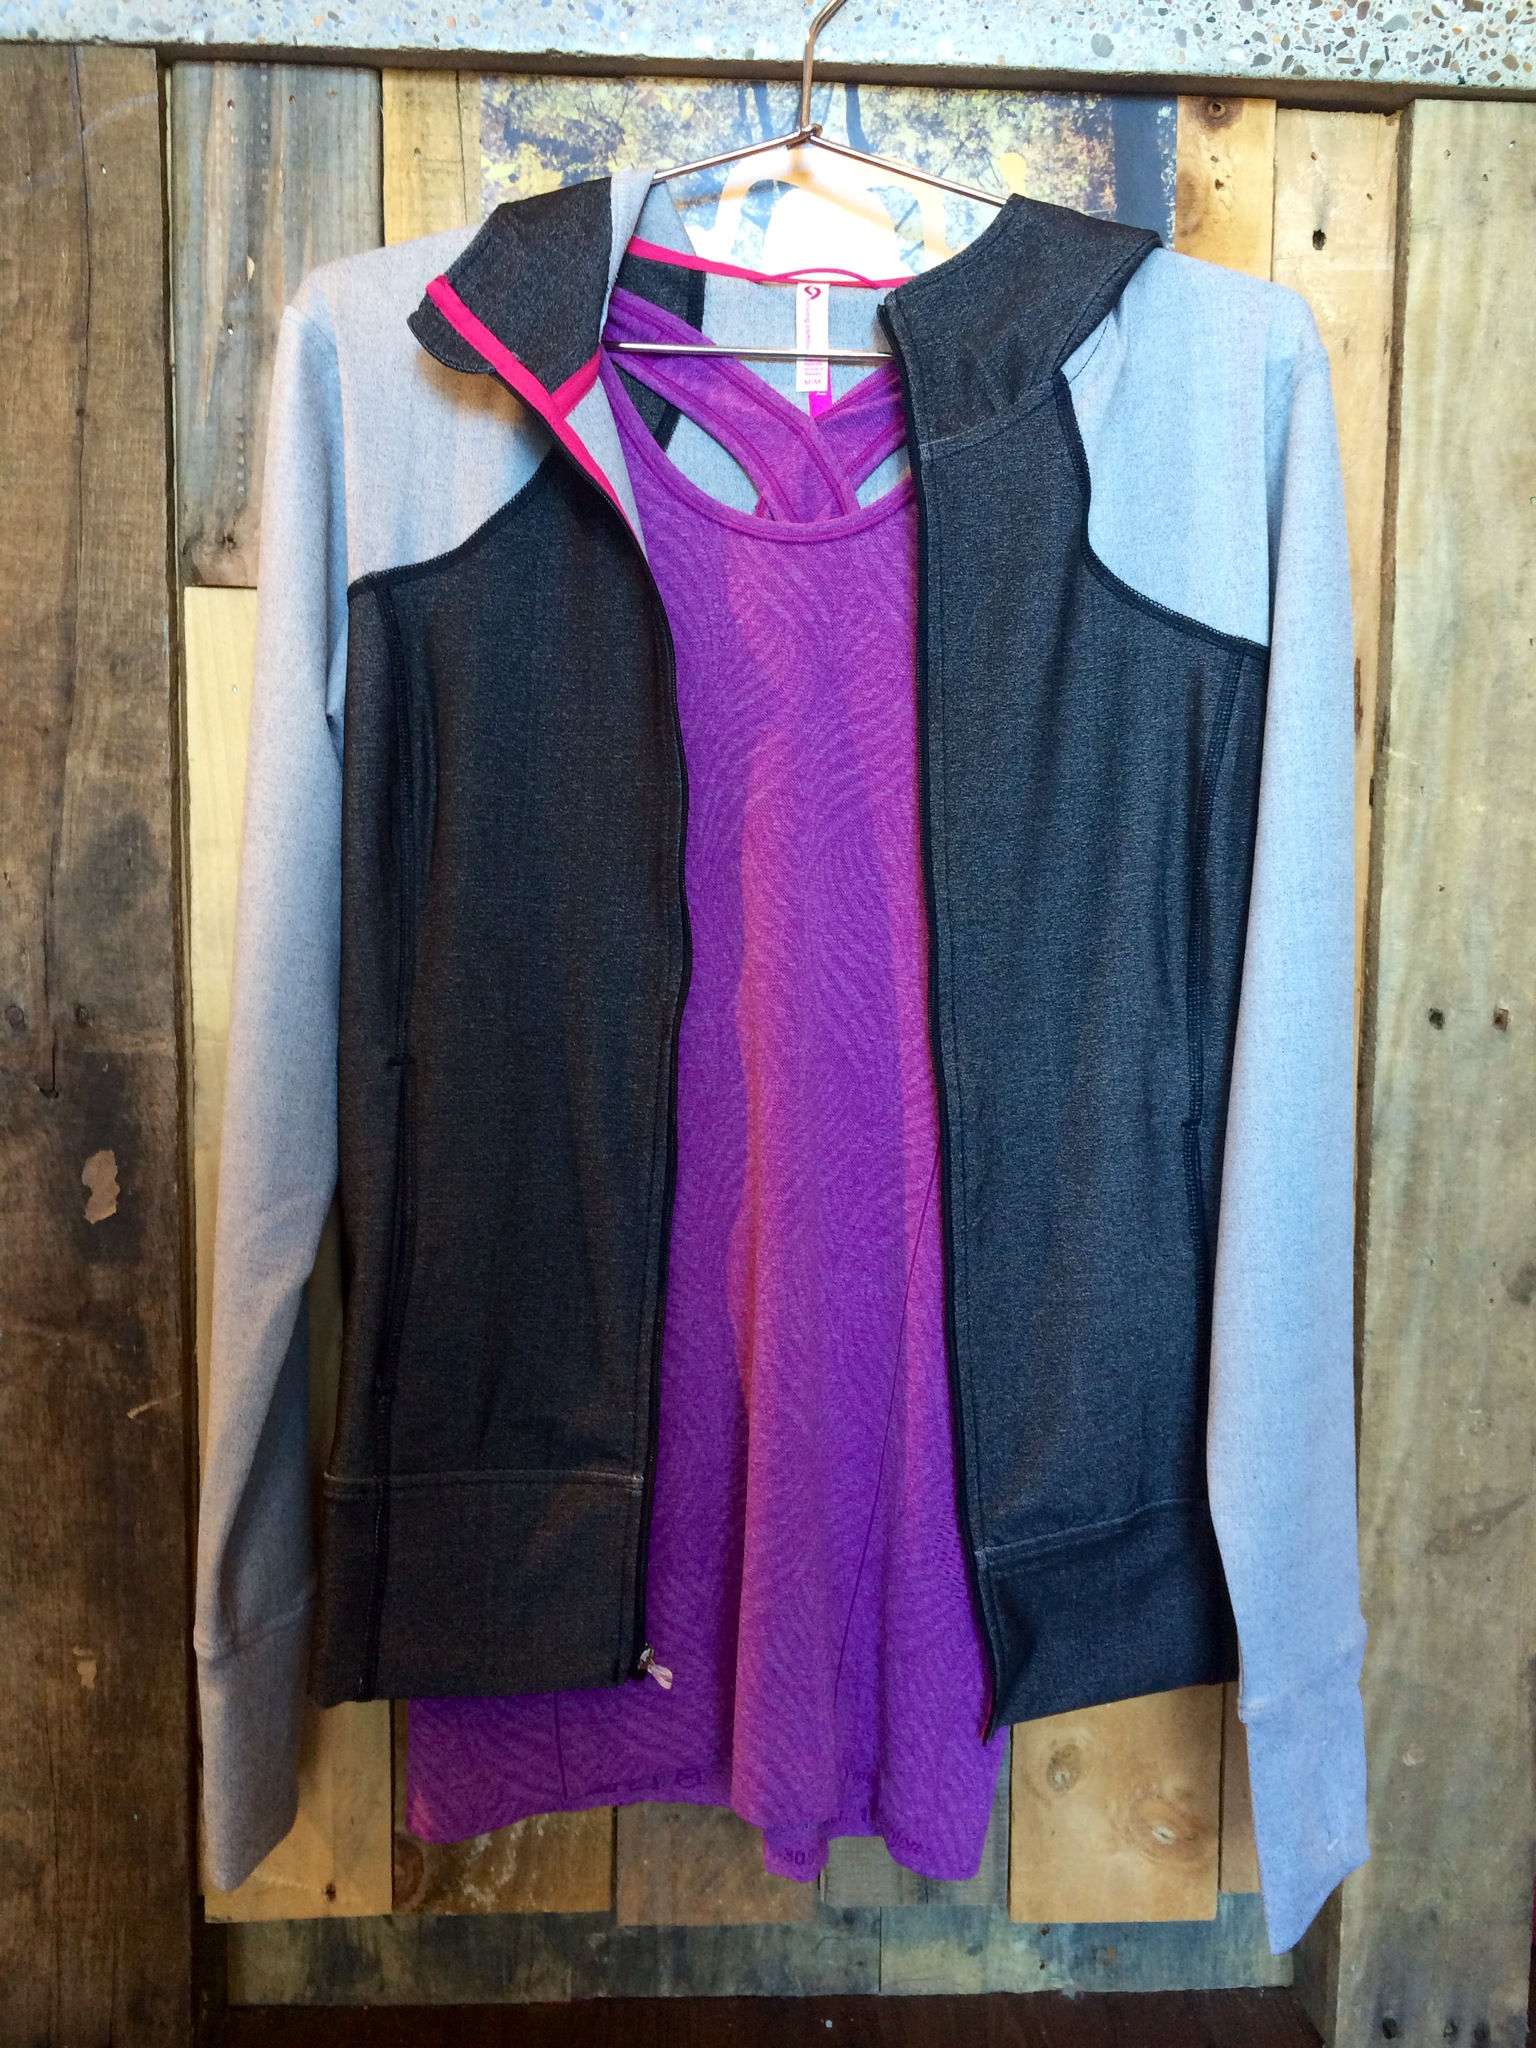 Don't put away your tank tops quite yet! They pair well underneath a full-zip jacket or long sleeve t-shirt.